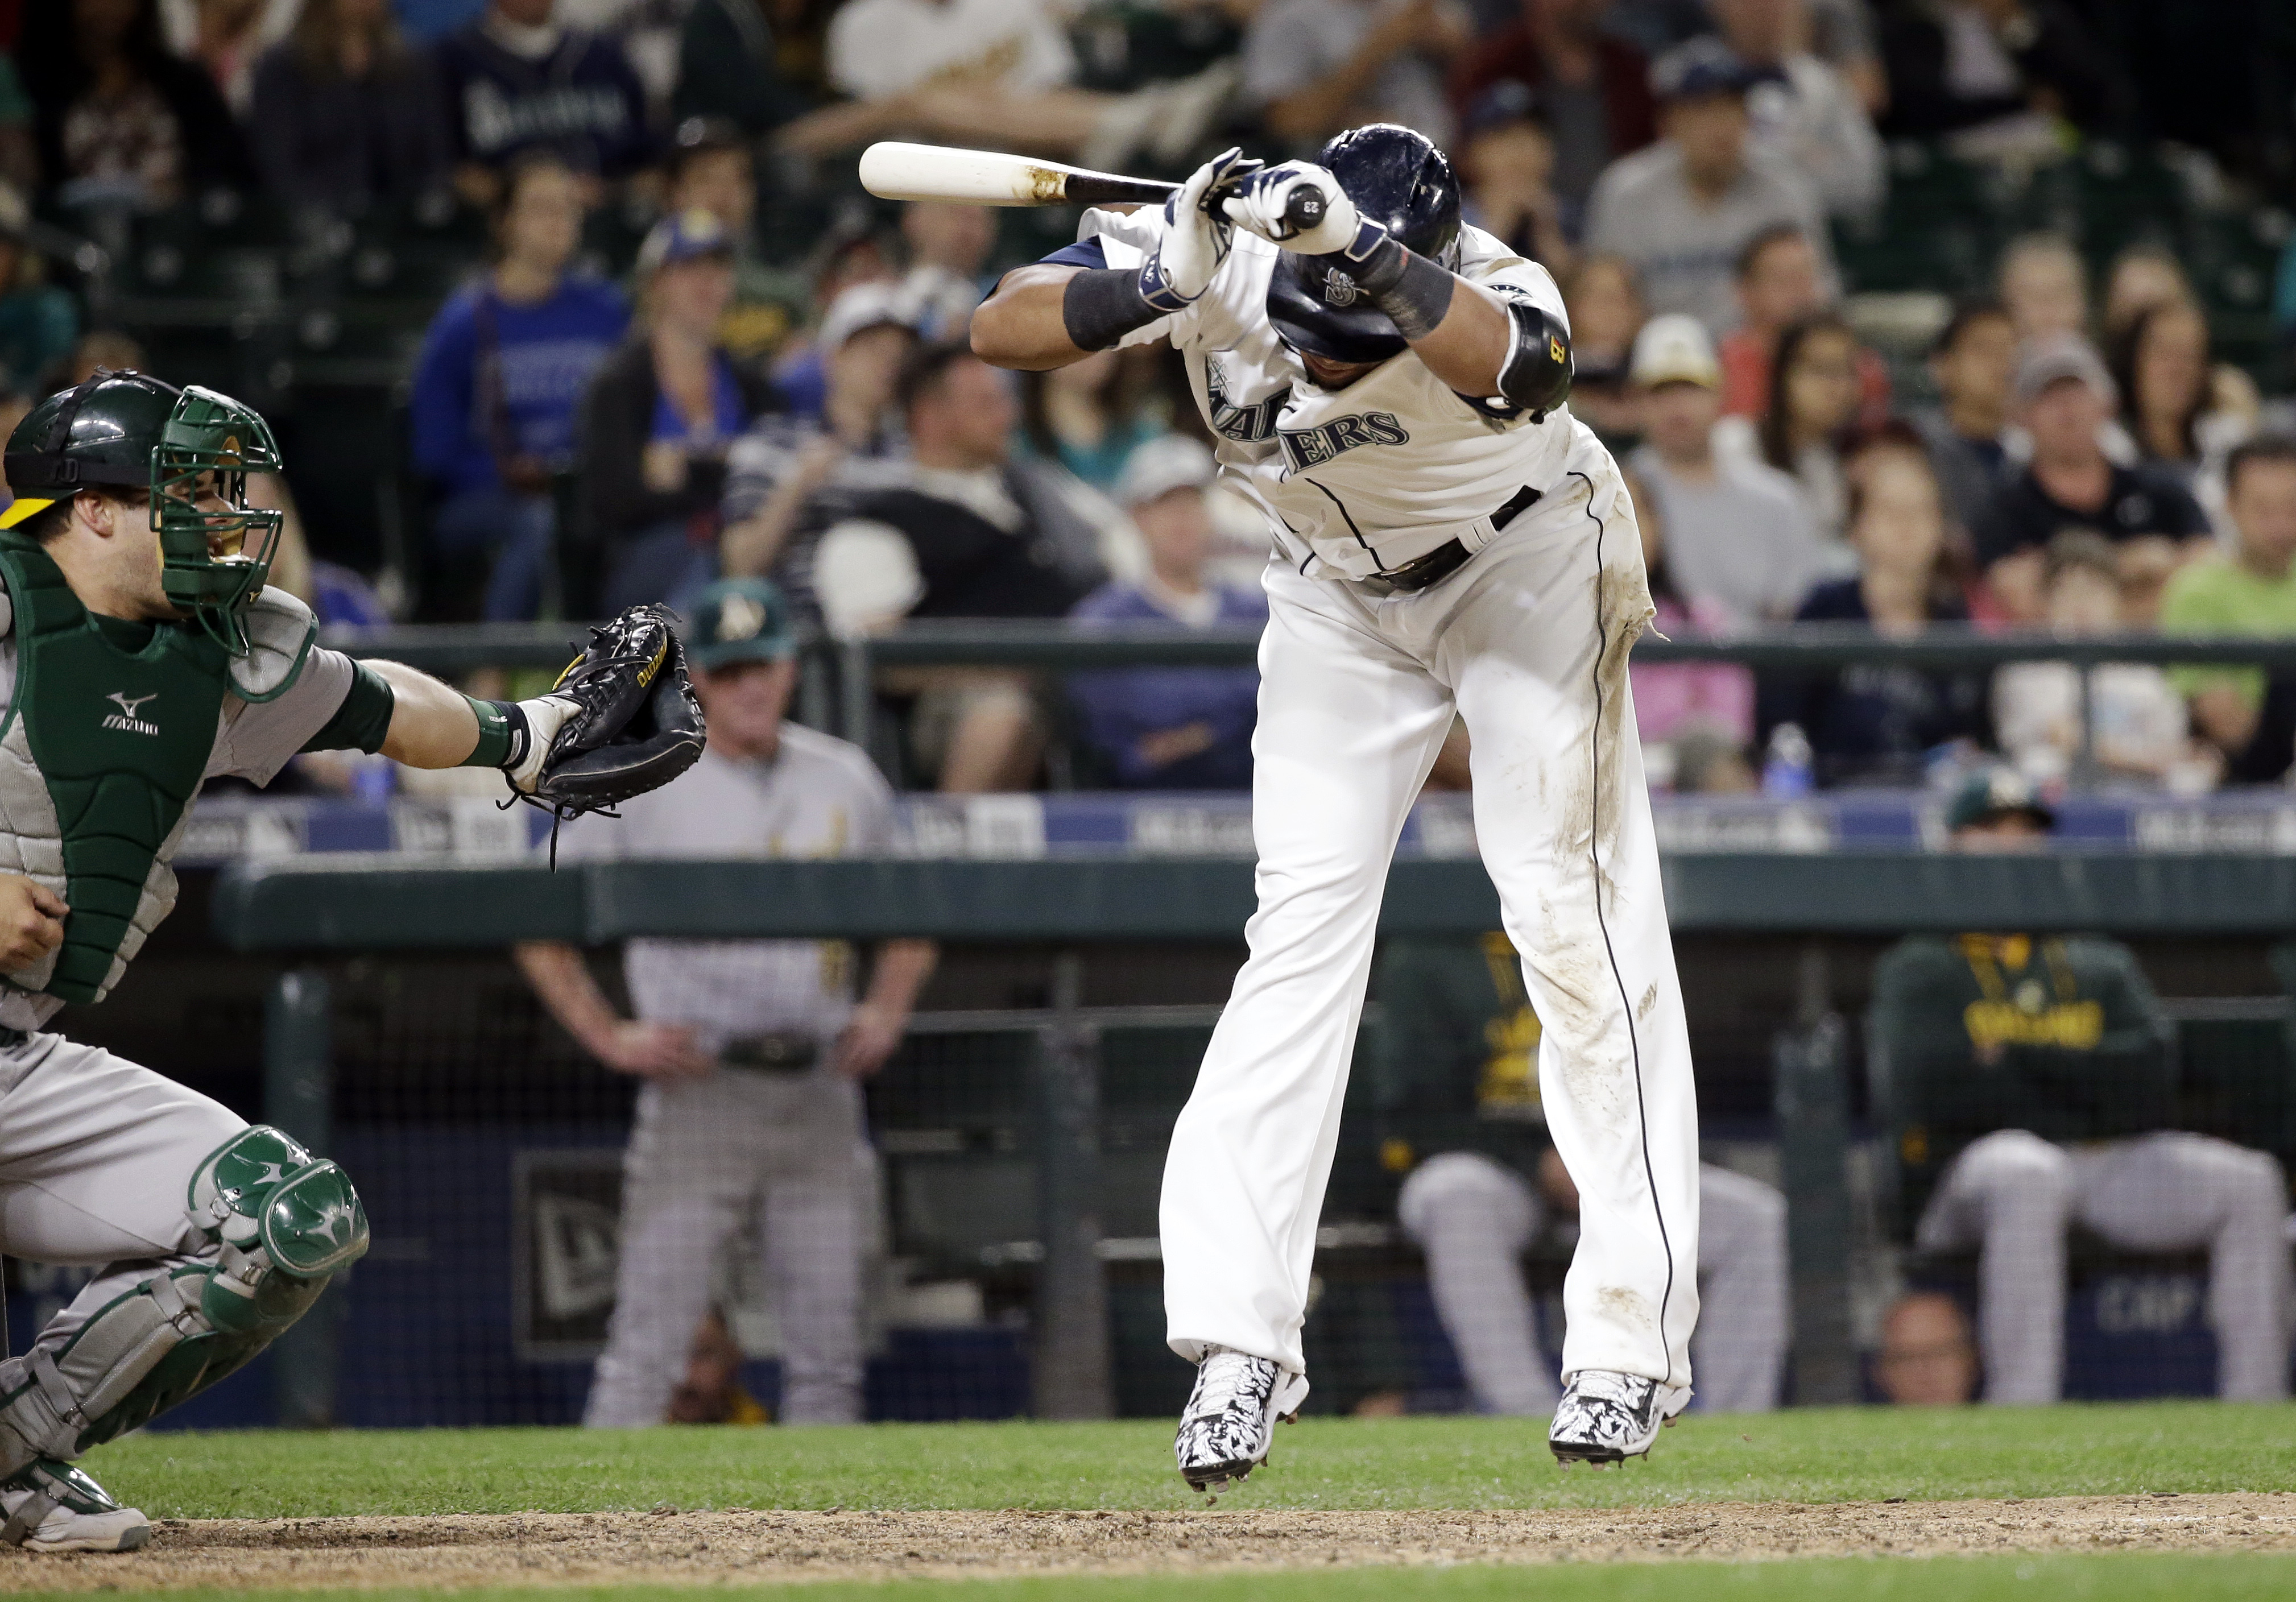 Seattle Mariners' Nelson Cruz, right, leaps back after being hit by a pitch as Oakland Athletics catcher Josh Phegley waits for the ball in the eighth inning of a baseball game Saturday, May 9, 2015, in Seattle. (AP Photo/Elaine Thompson)